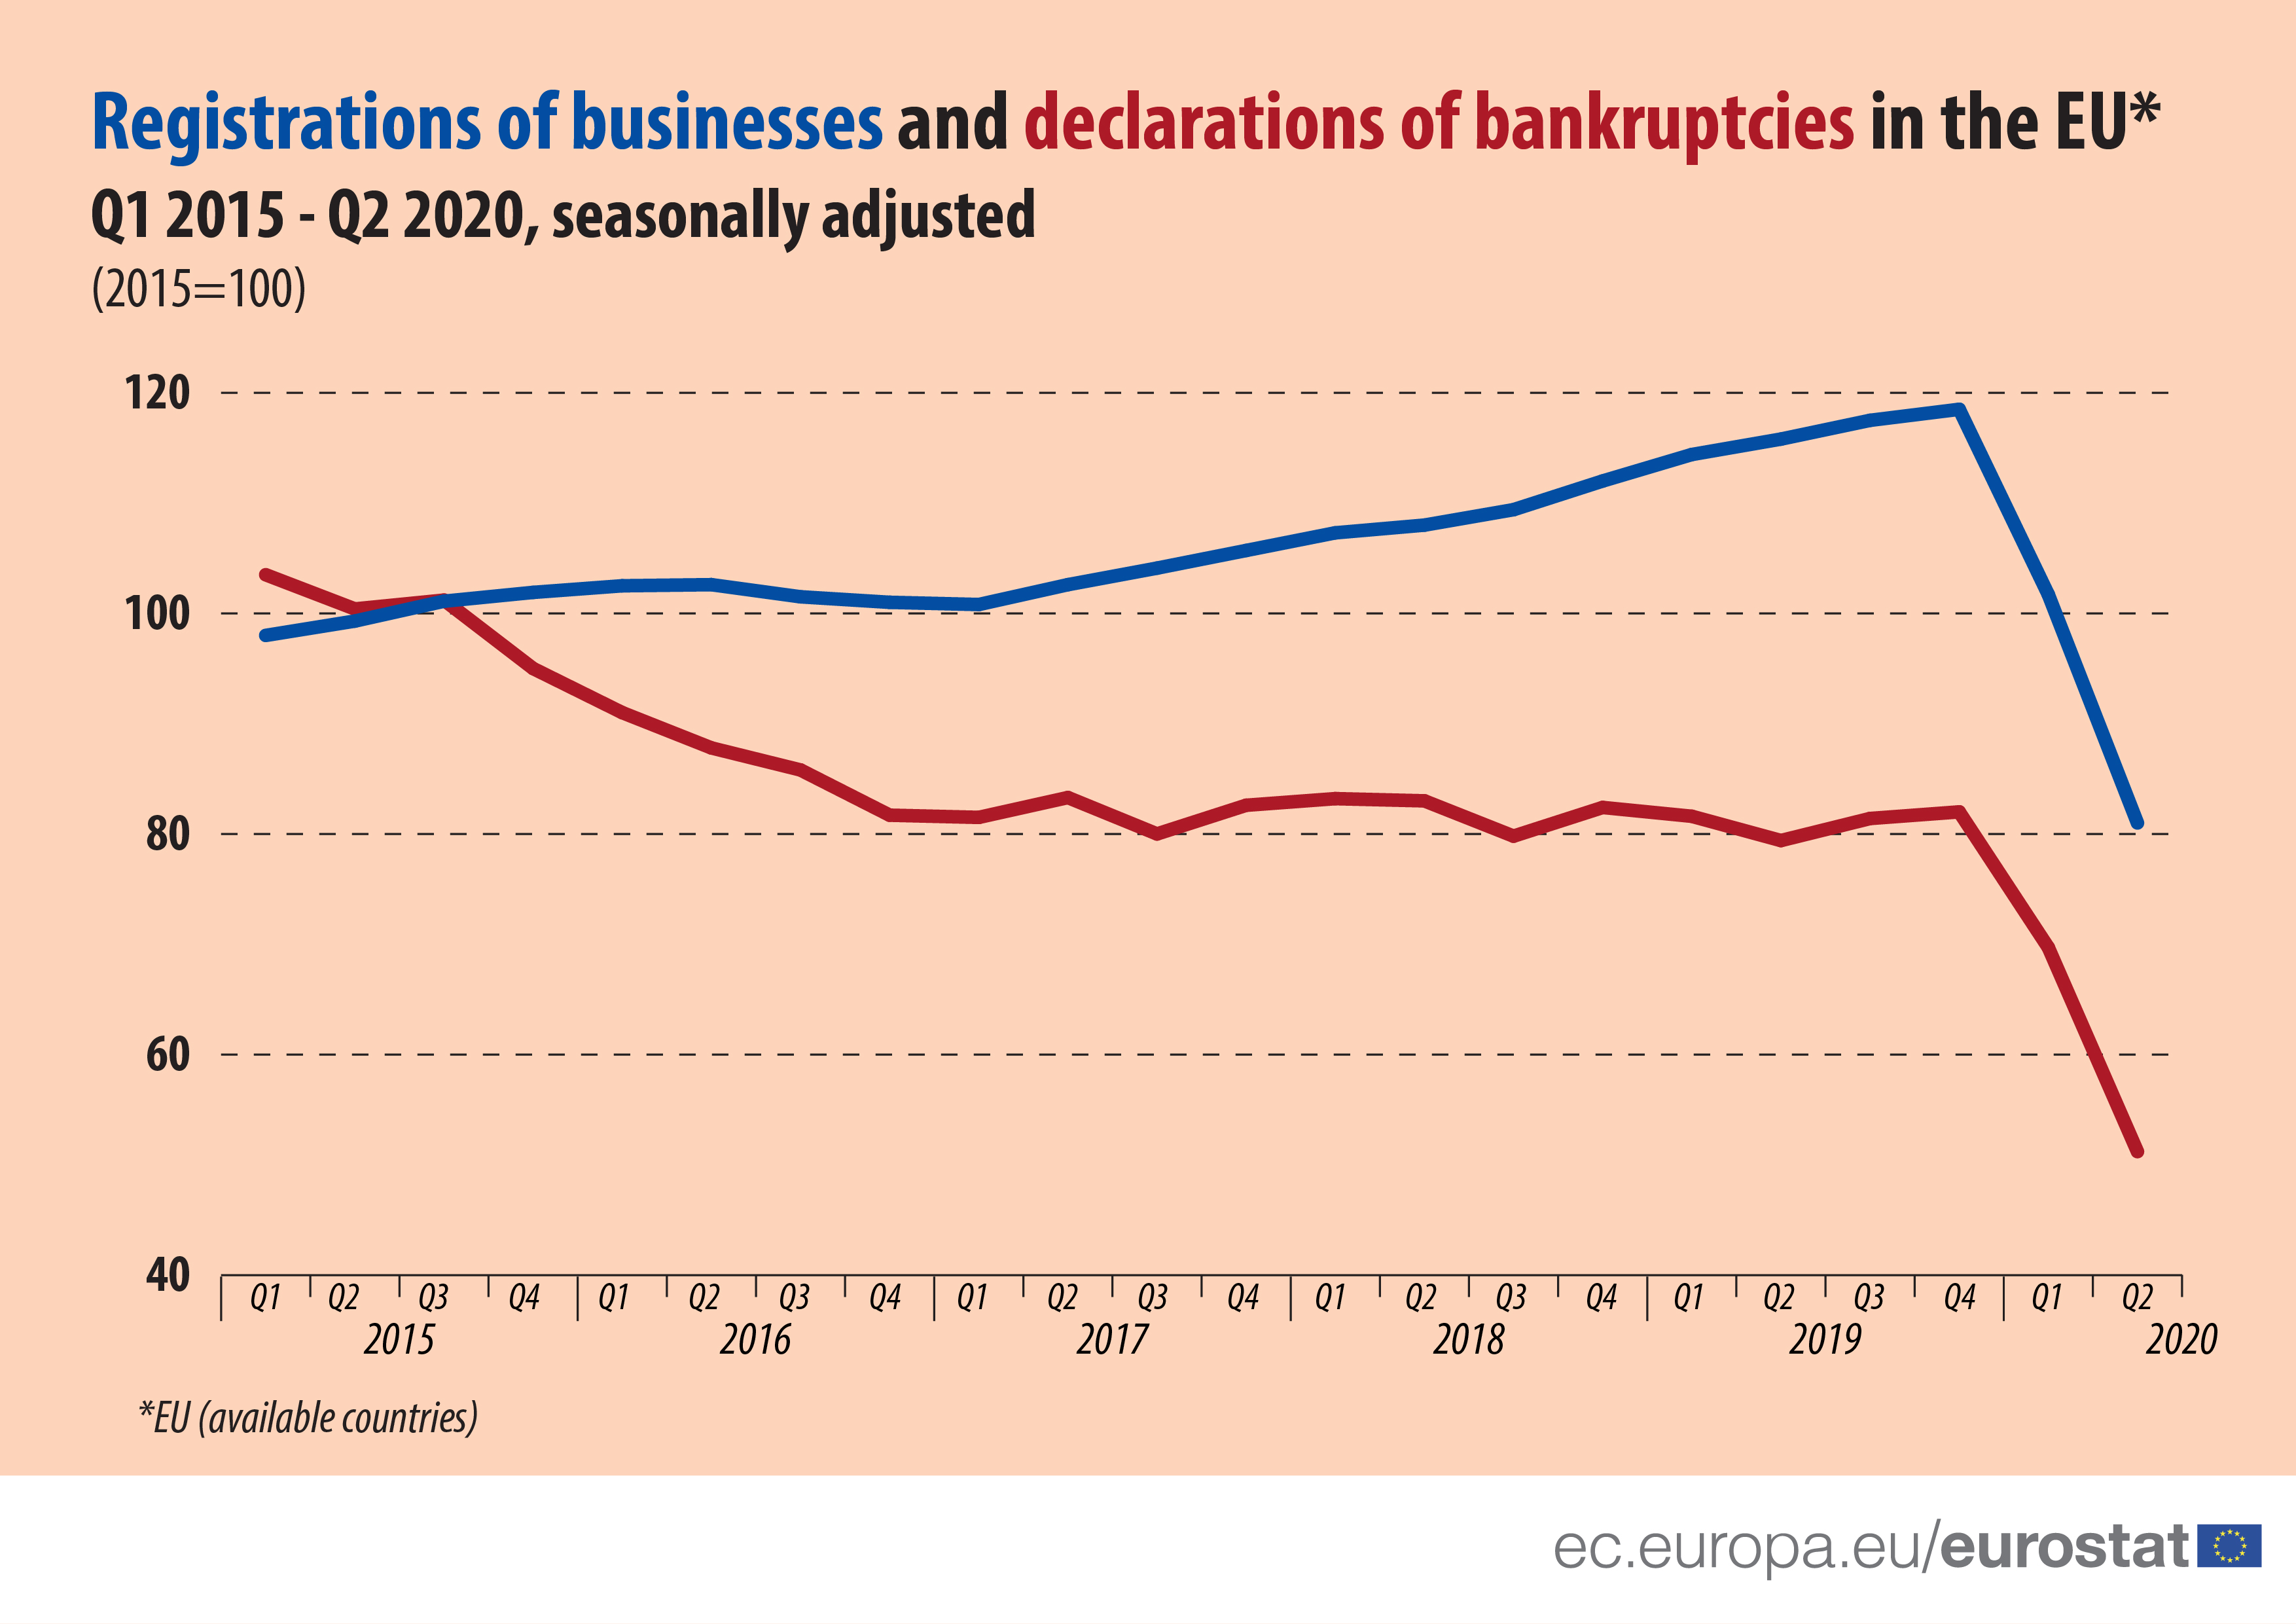 Registrations of businesses and declarations of bankruptcies in the EU